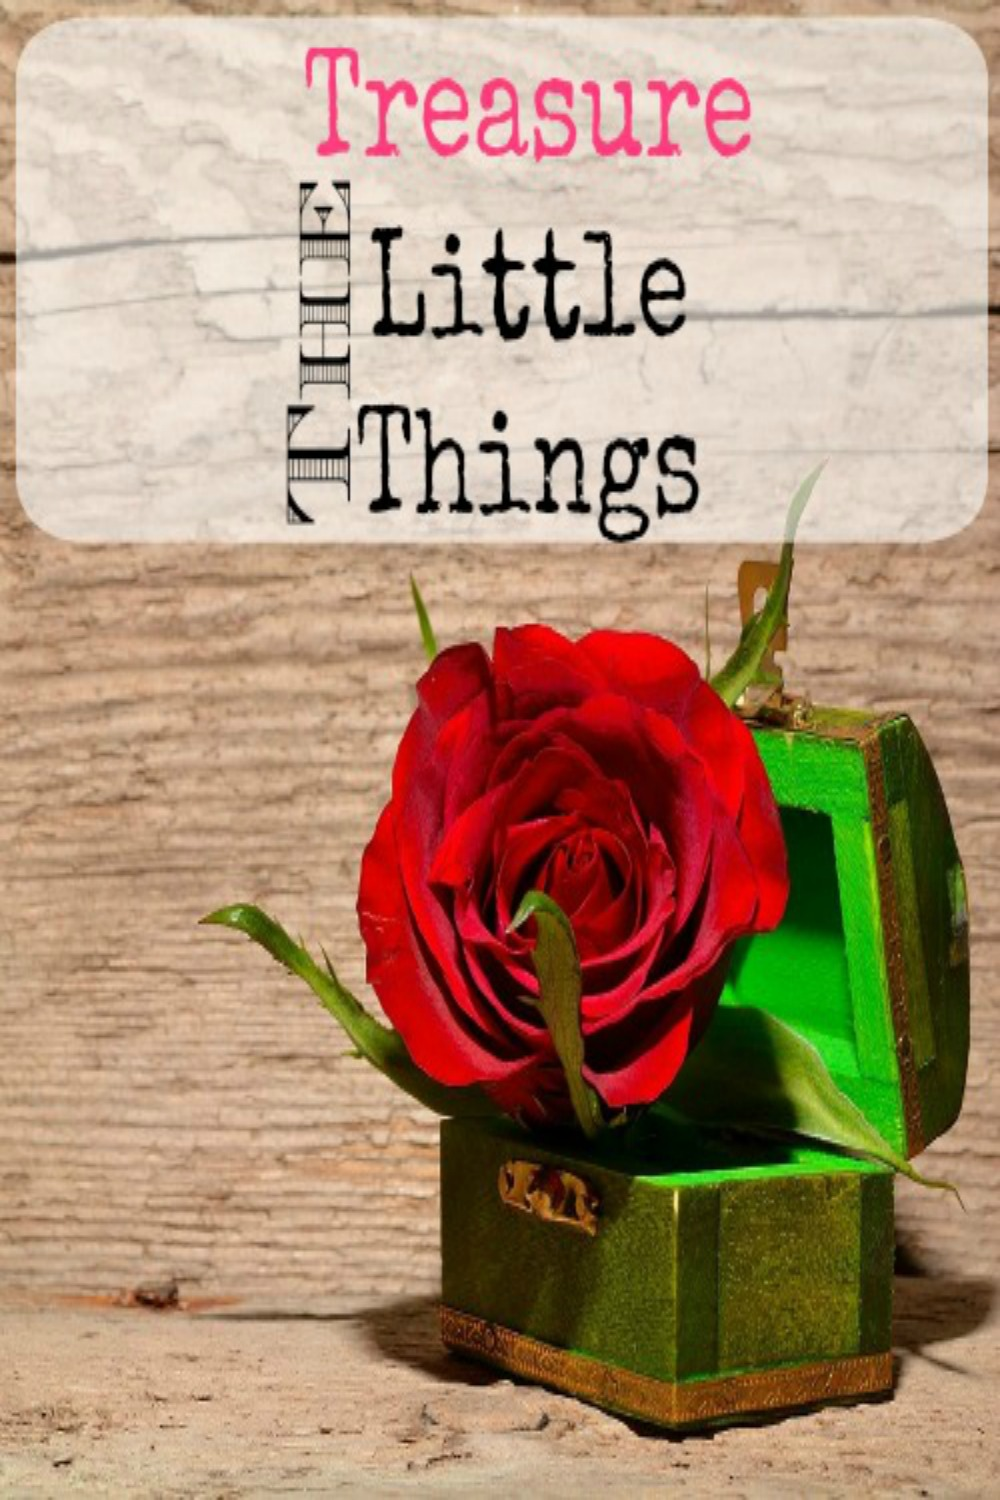 Treasure the little things. Great inspirational post about treasuring the little things.